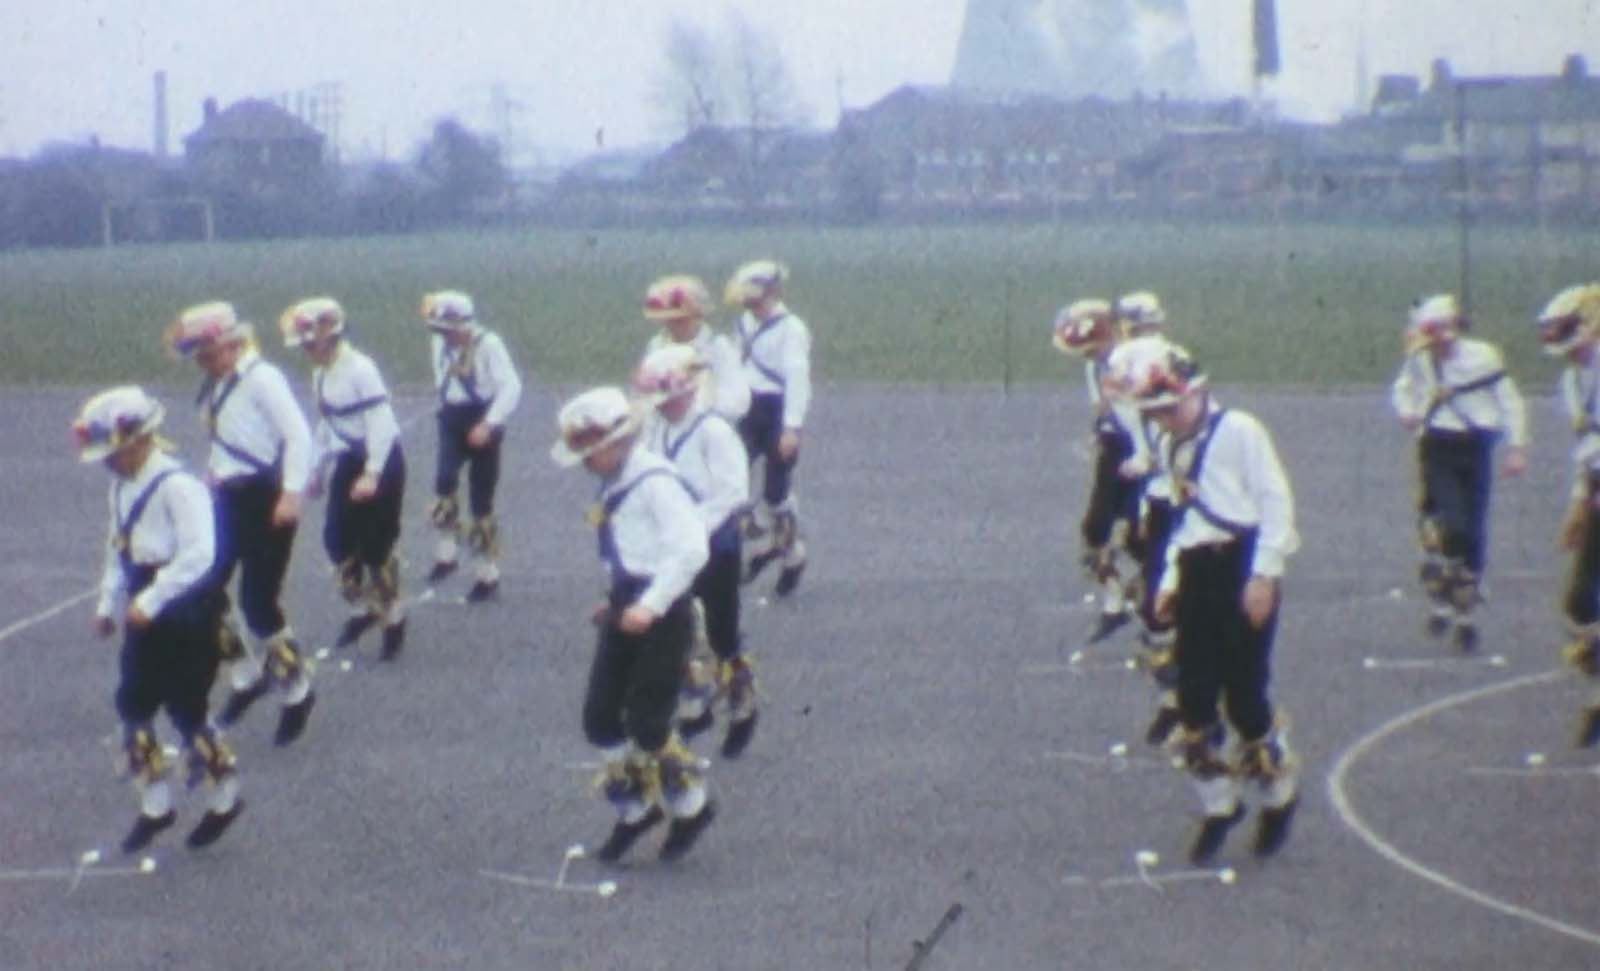 a filsm still showing Morris Men dancing on a playground in a city park